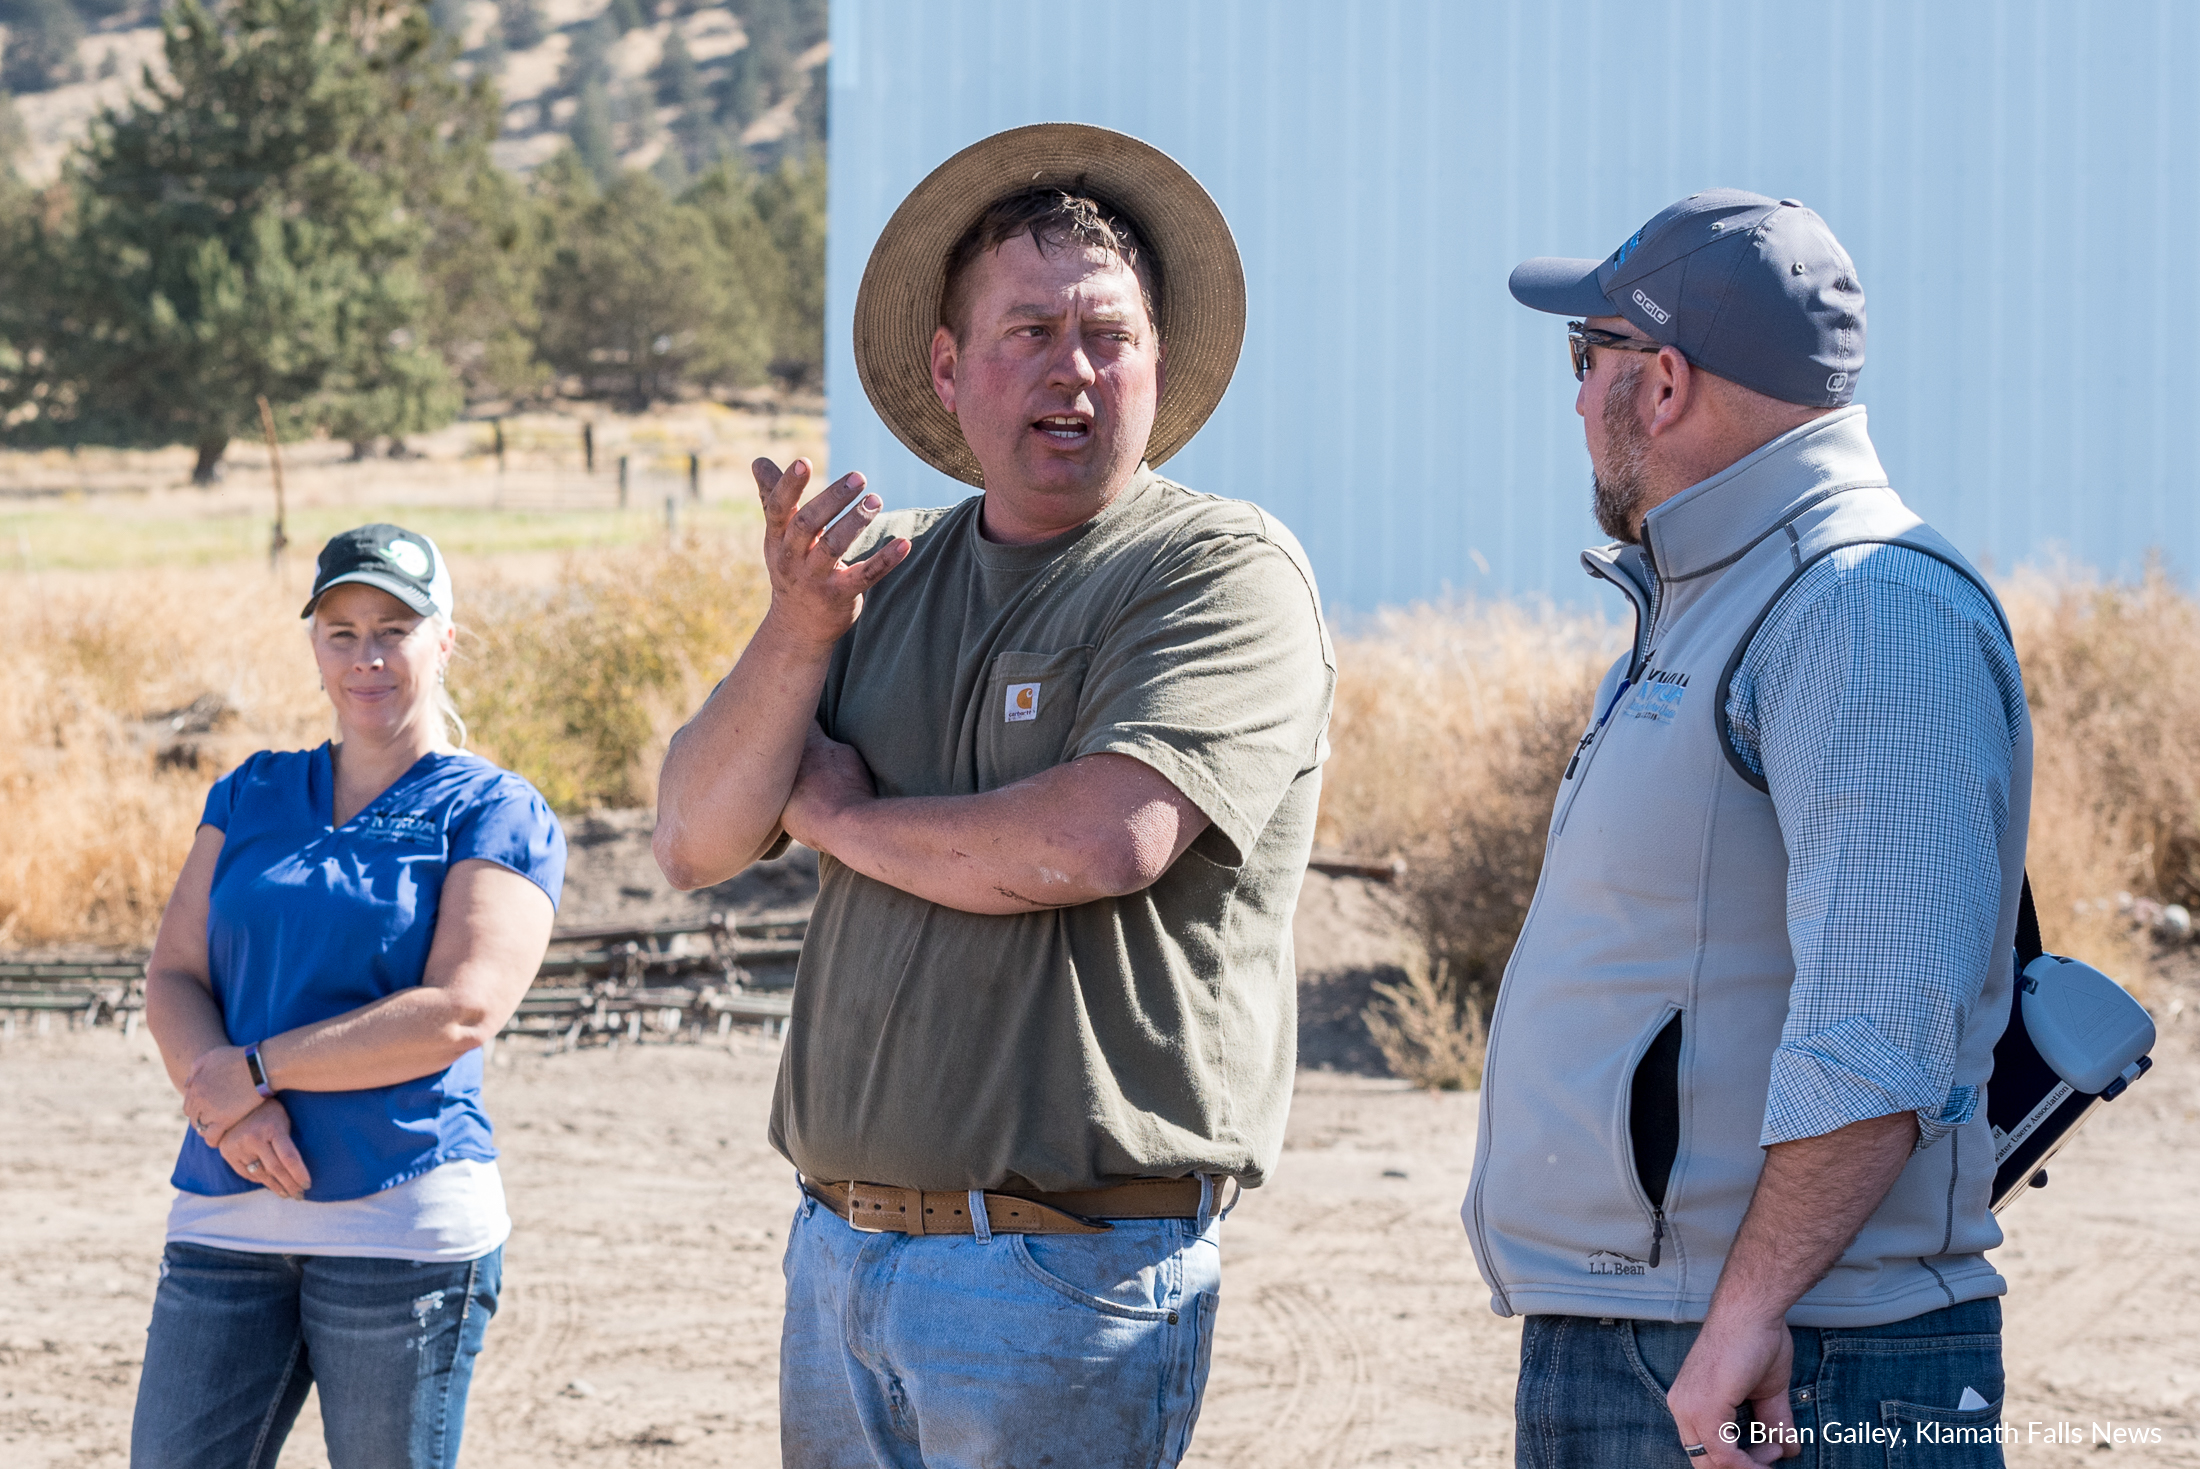 Luke Robinson speaks with Scott White and the Harvest Tour group about potato farming as Chelsea Shearer looks on. ( Brian Gaile)